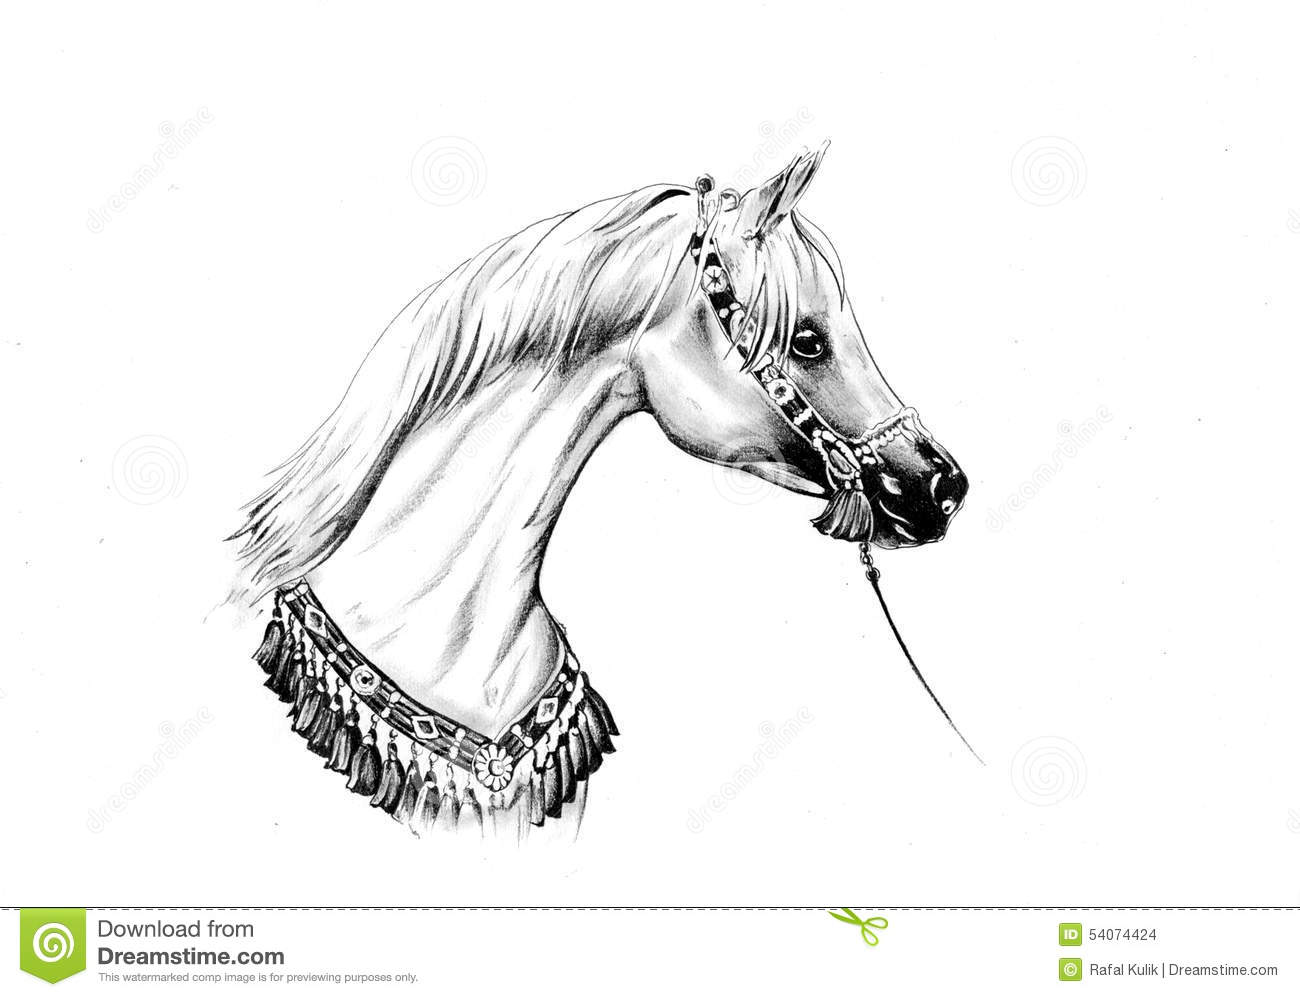 Notebook And Pen Sketch Stock Vector Art More Images Of: Horse Drawing Sketch Art Handmade Stock Illustration